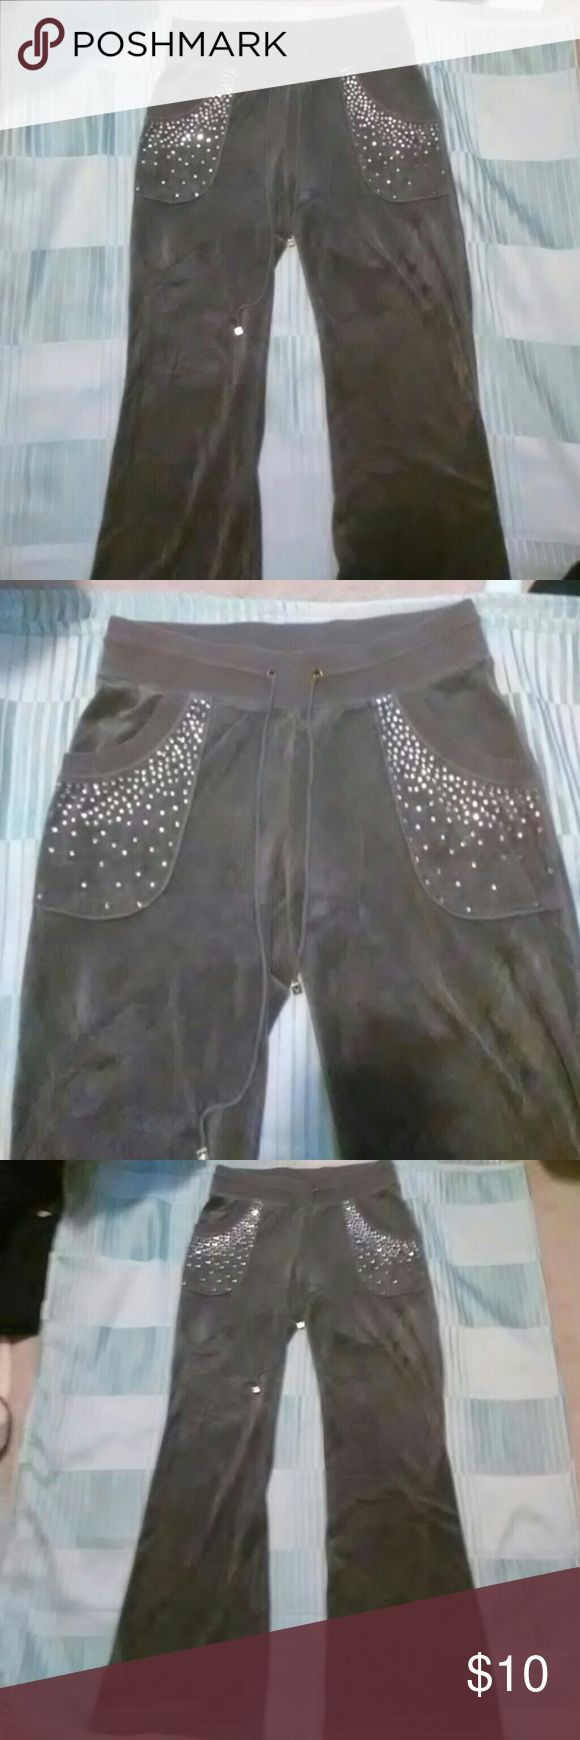 """Grey Valor Sweatpants Size Small Grey Valor Sweatpants Size Small. Purchased only thinking they were Victoria Secret because the silver squares on the strings of the pants say """"VS"""" on one side and a heart on the other. They are made by the brand Plush & Lush but are in good condition and very comfortable. Listed under Juicy Couture for views, however I do have Juicy Couture outfits for sale. Juicy Couture Pants"""